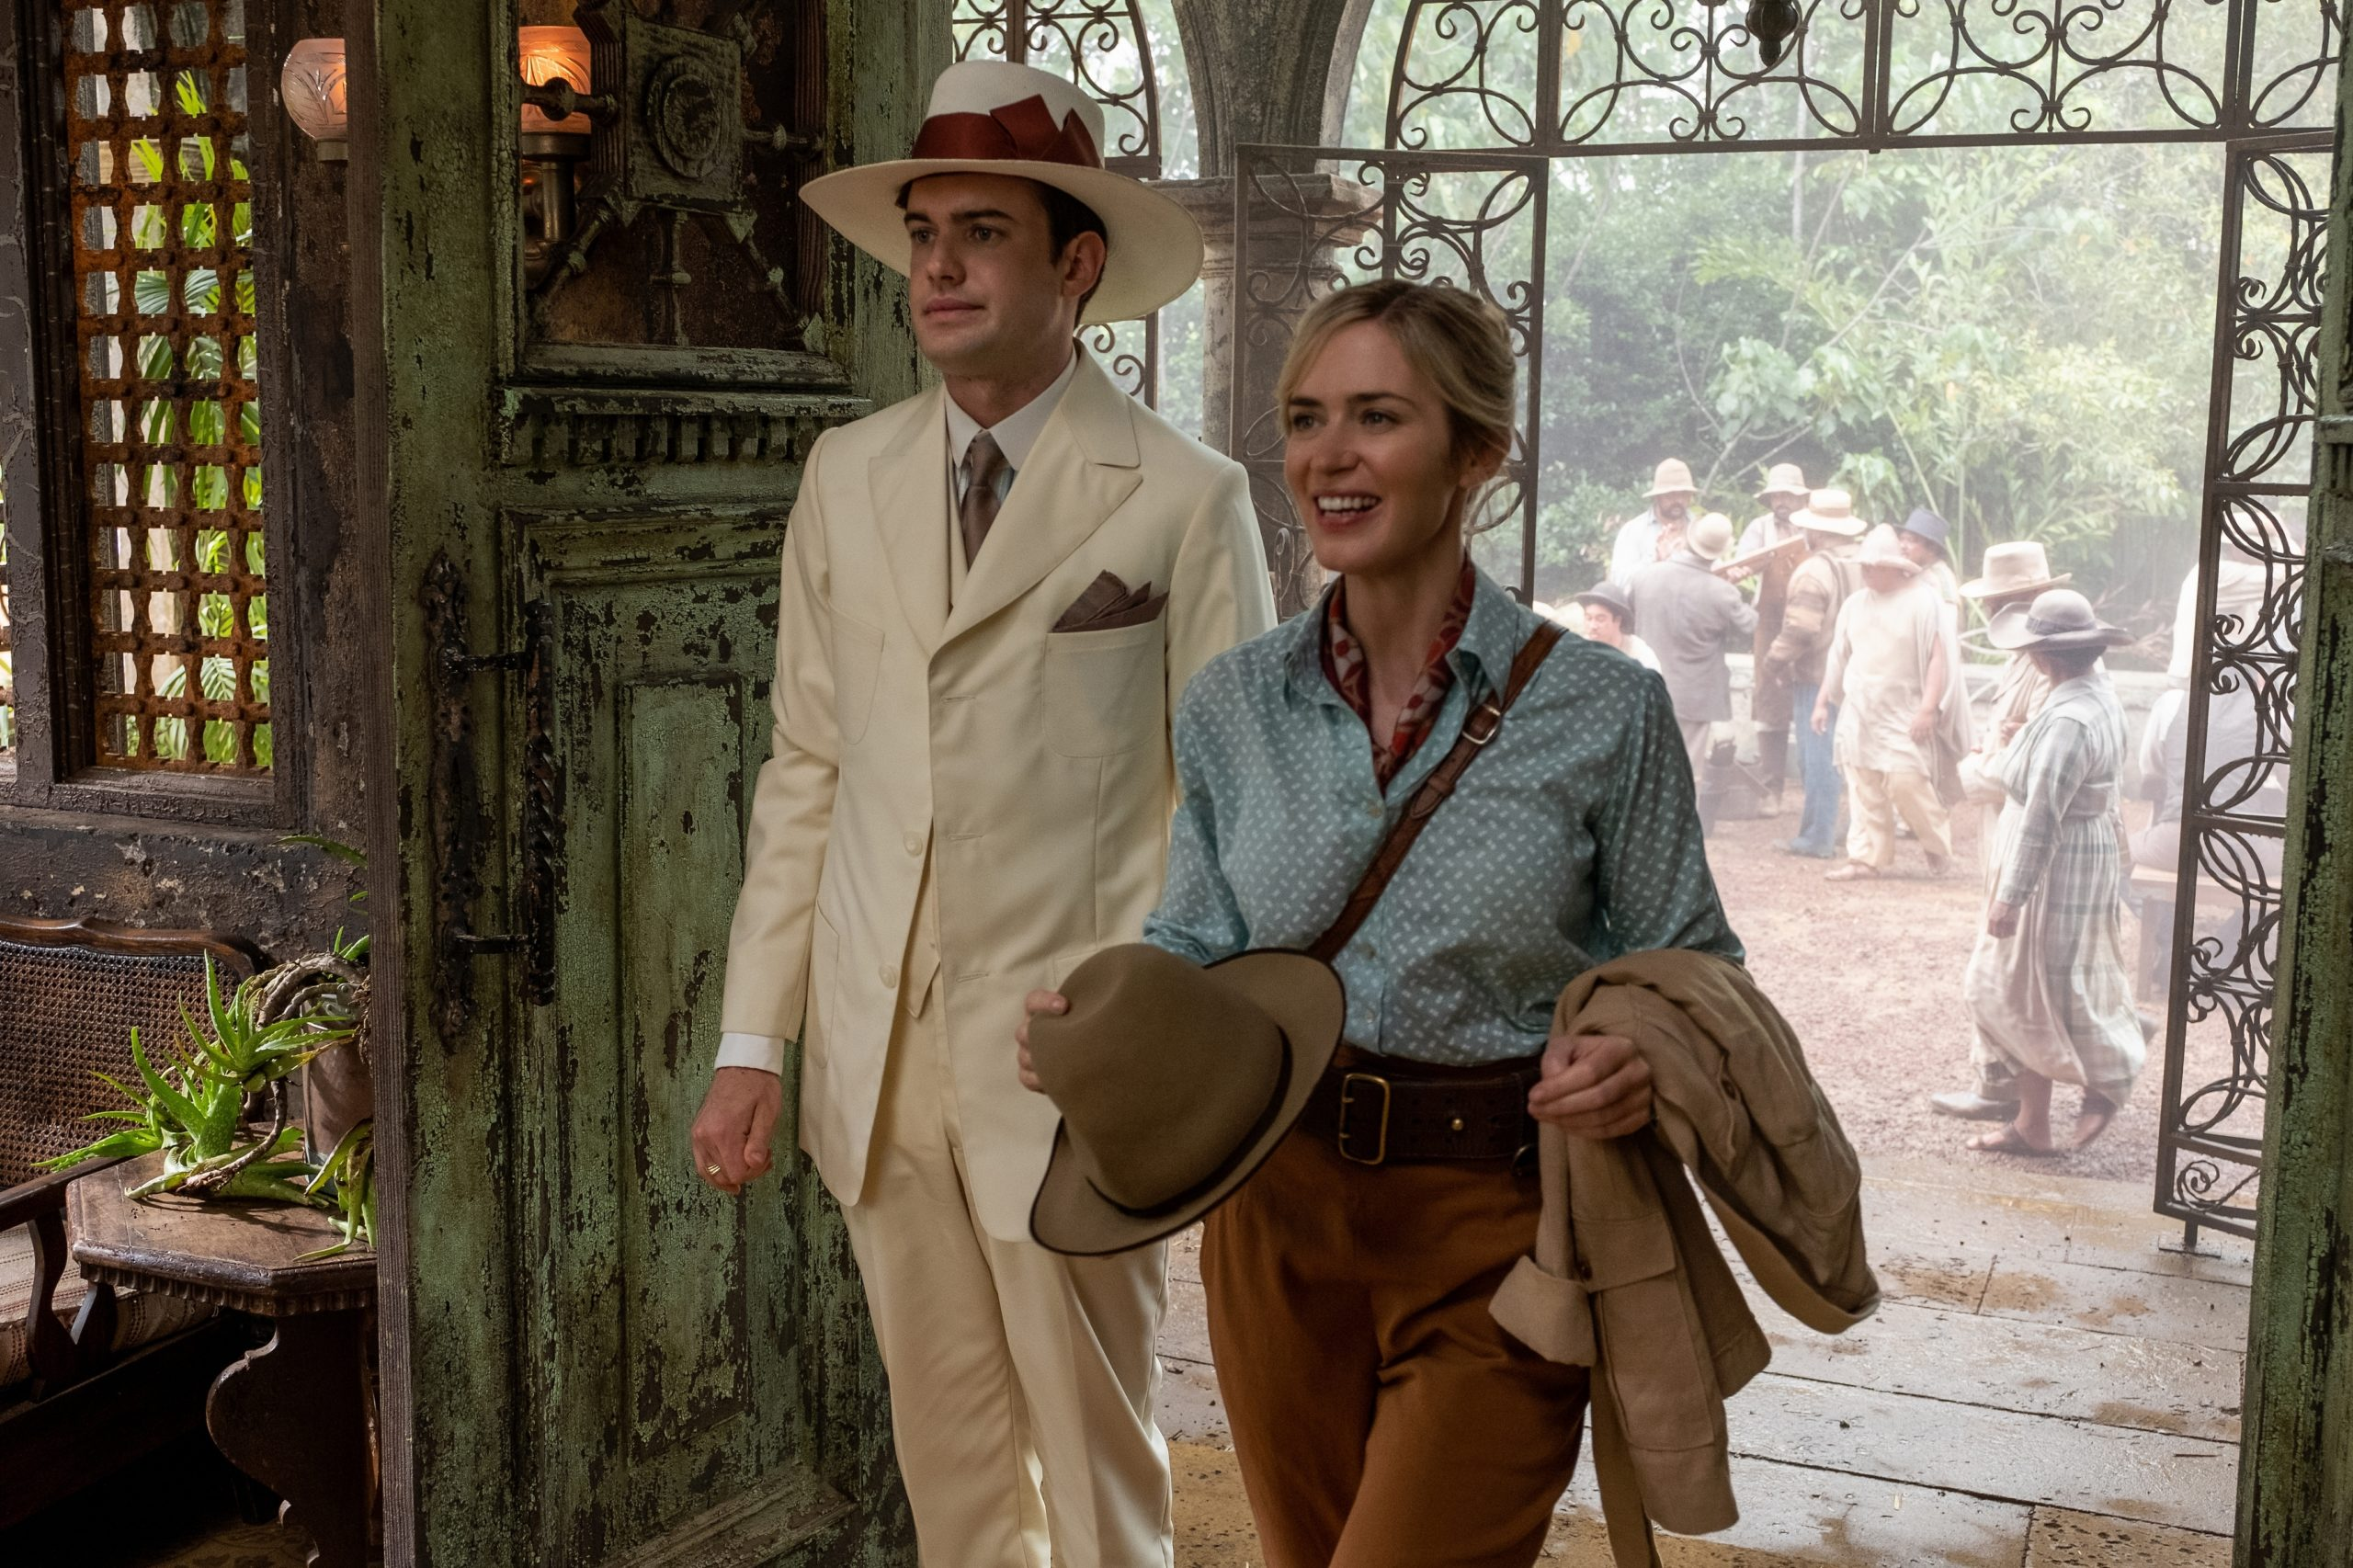 Blunt as Lily Houghton and Whitehall as MacGregor Houghton in Disney's Jungle Cruise